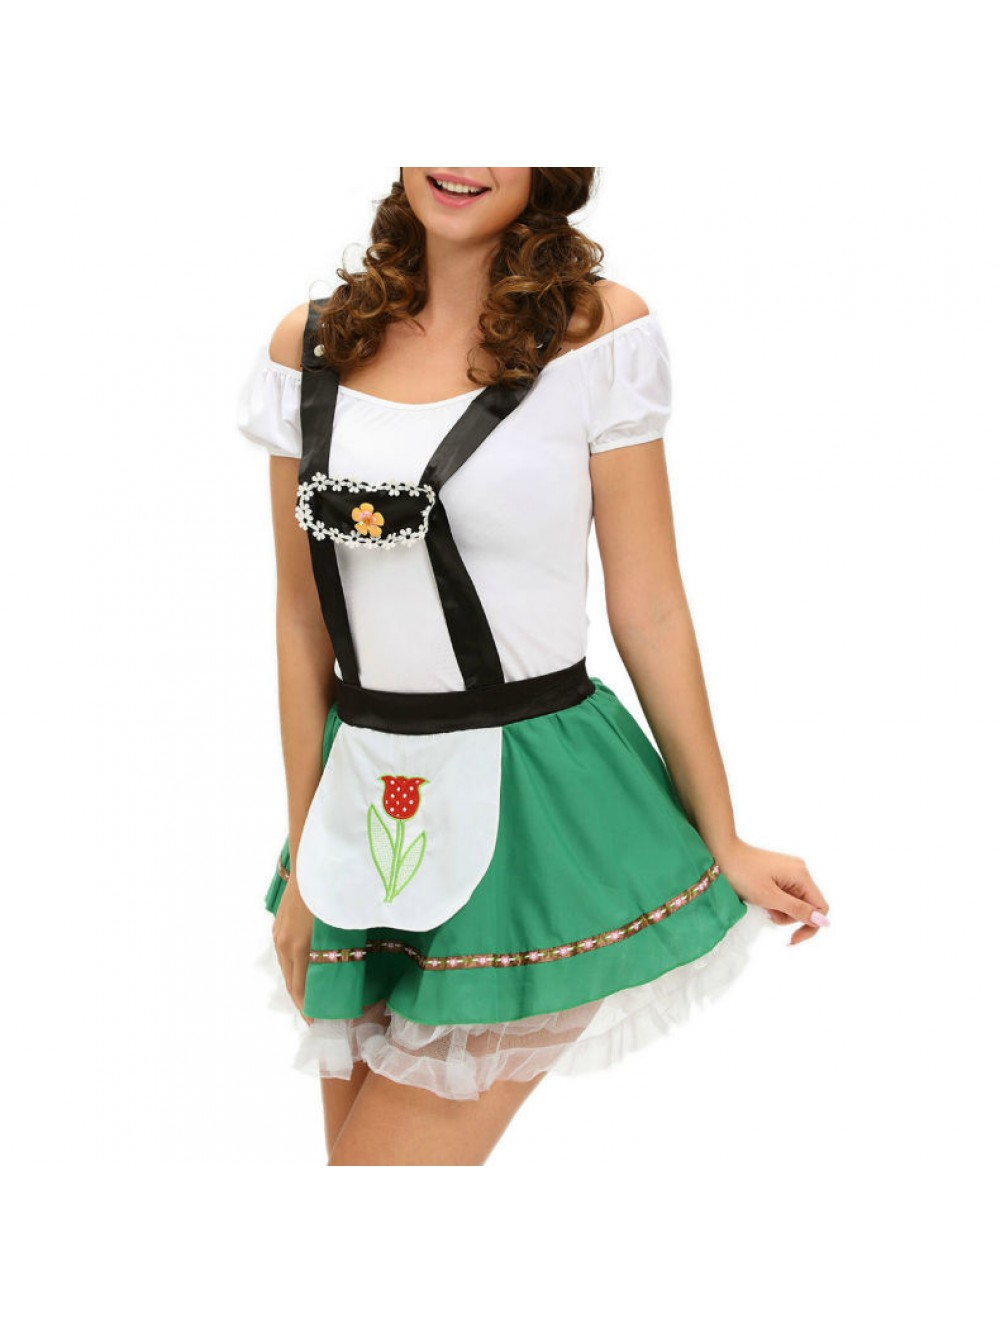 QUEEN COSTUME OCTOBERFEST ONE SIZE